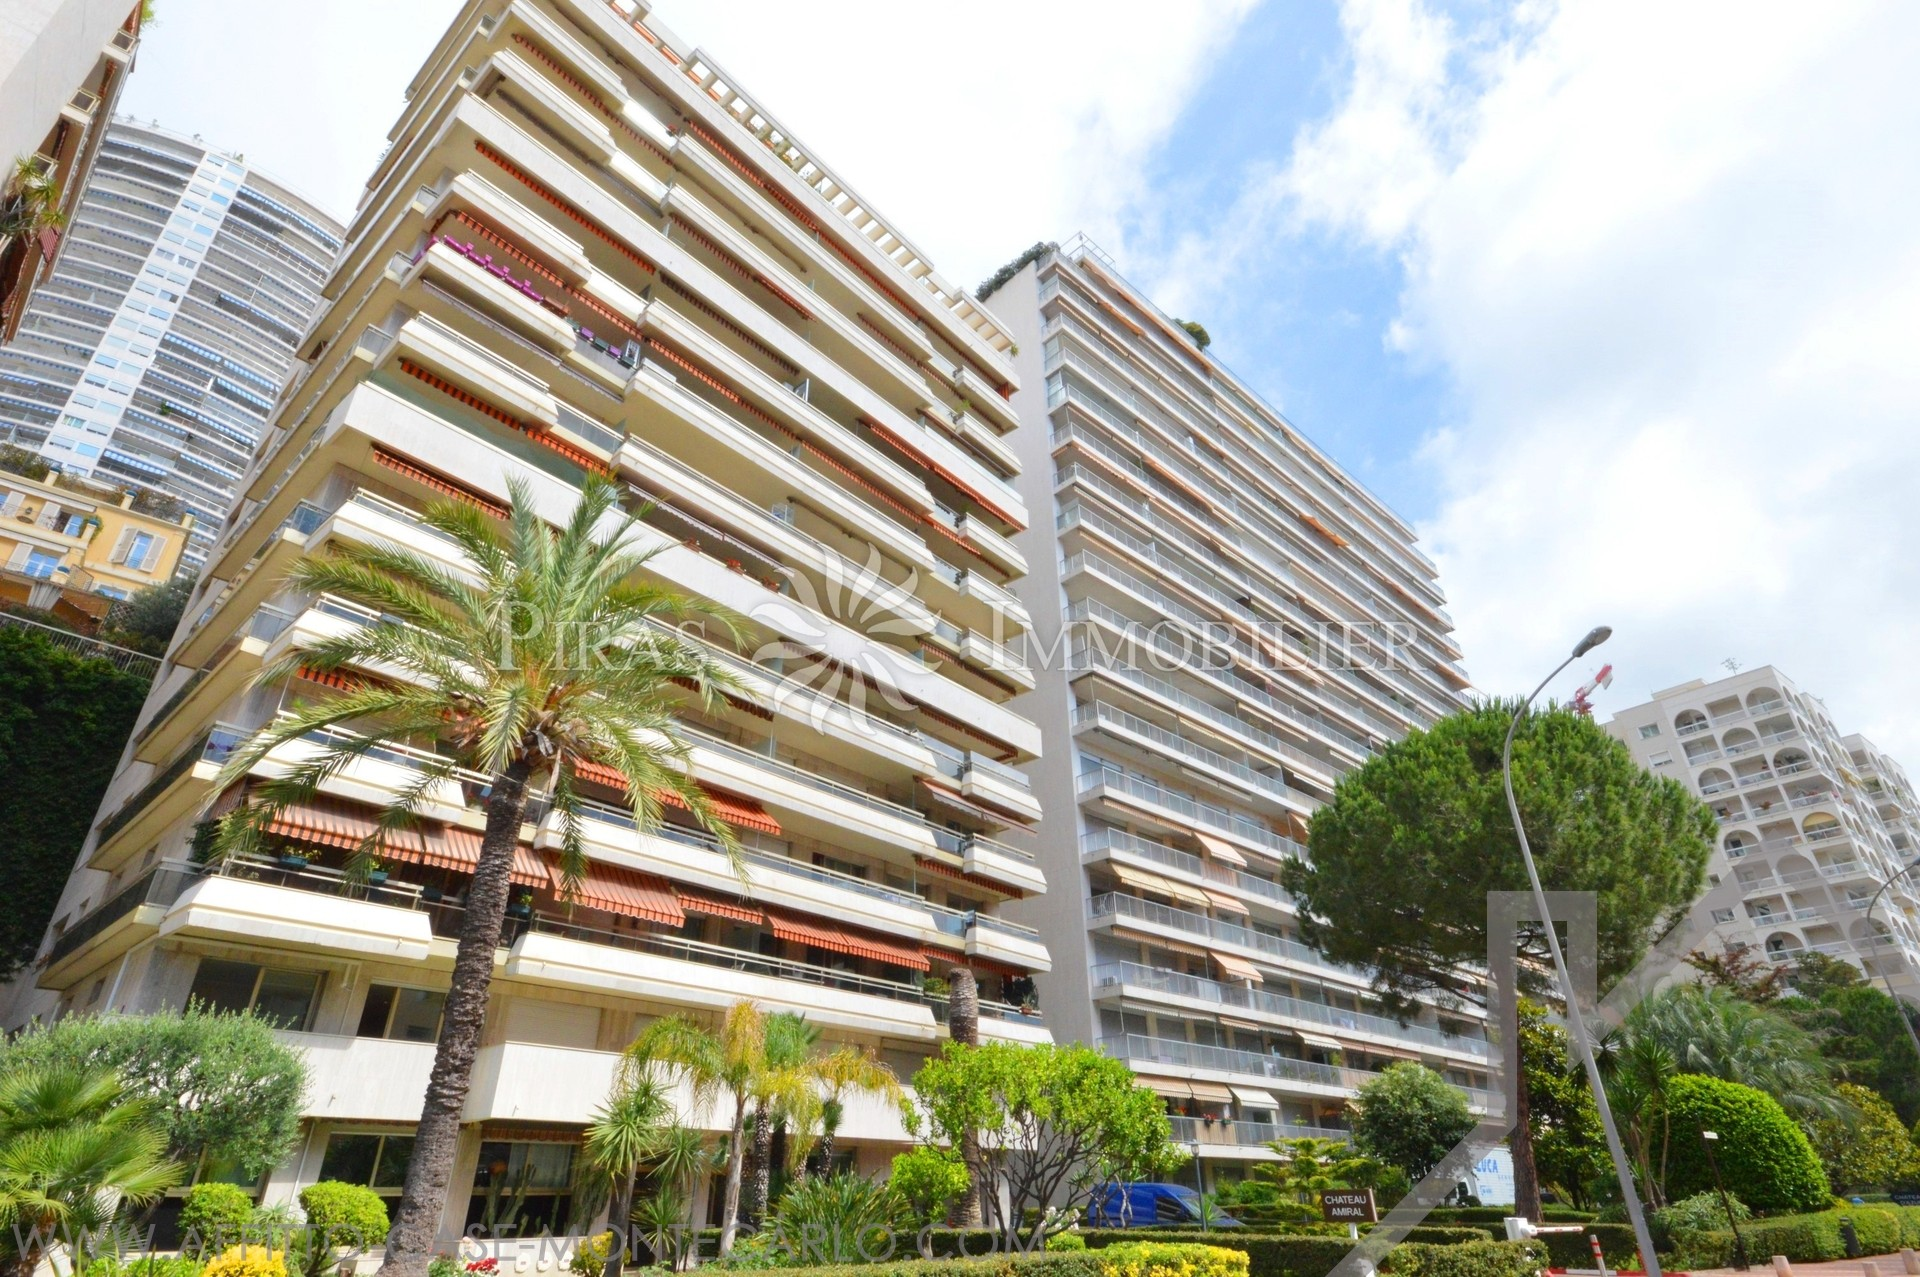 Château Amiral- Boulevard d'Italie - Parking - Apartments for rent in Monaco